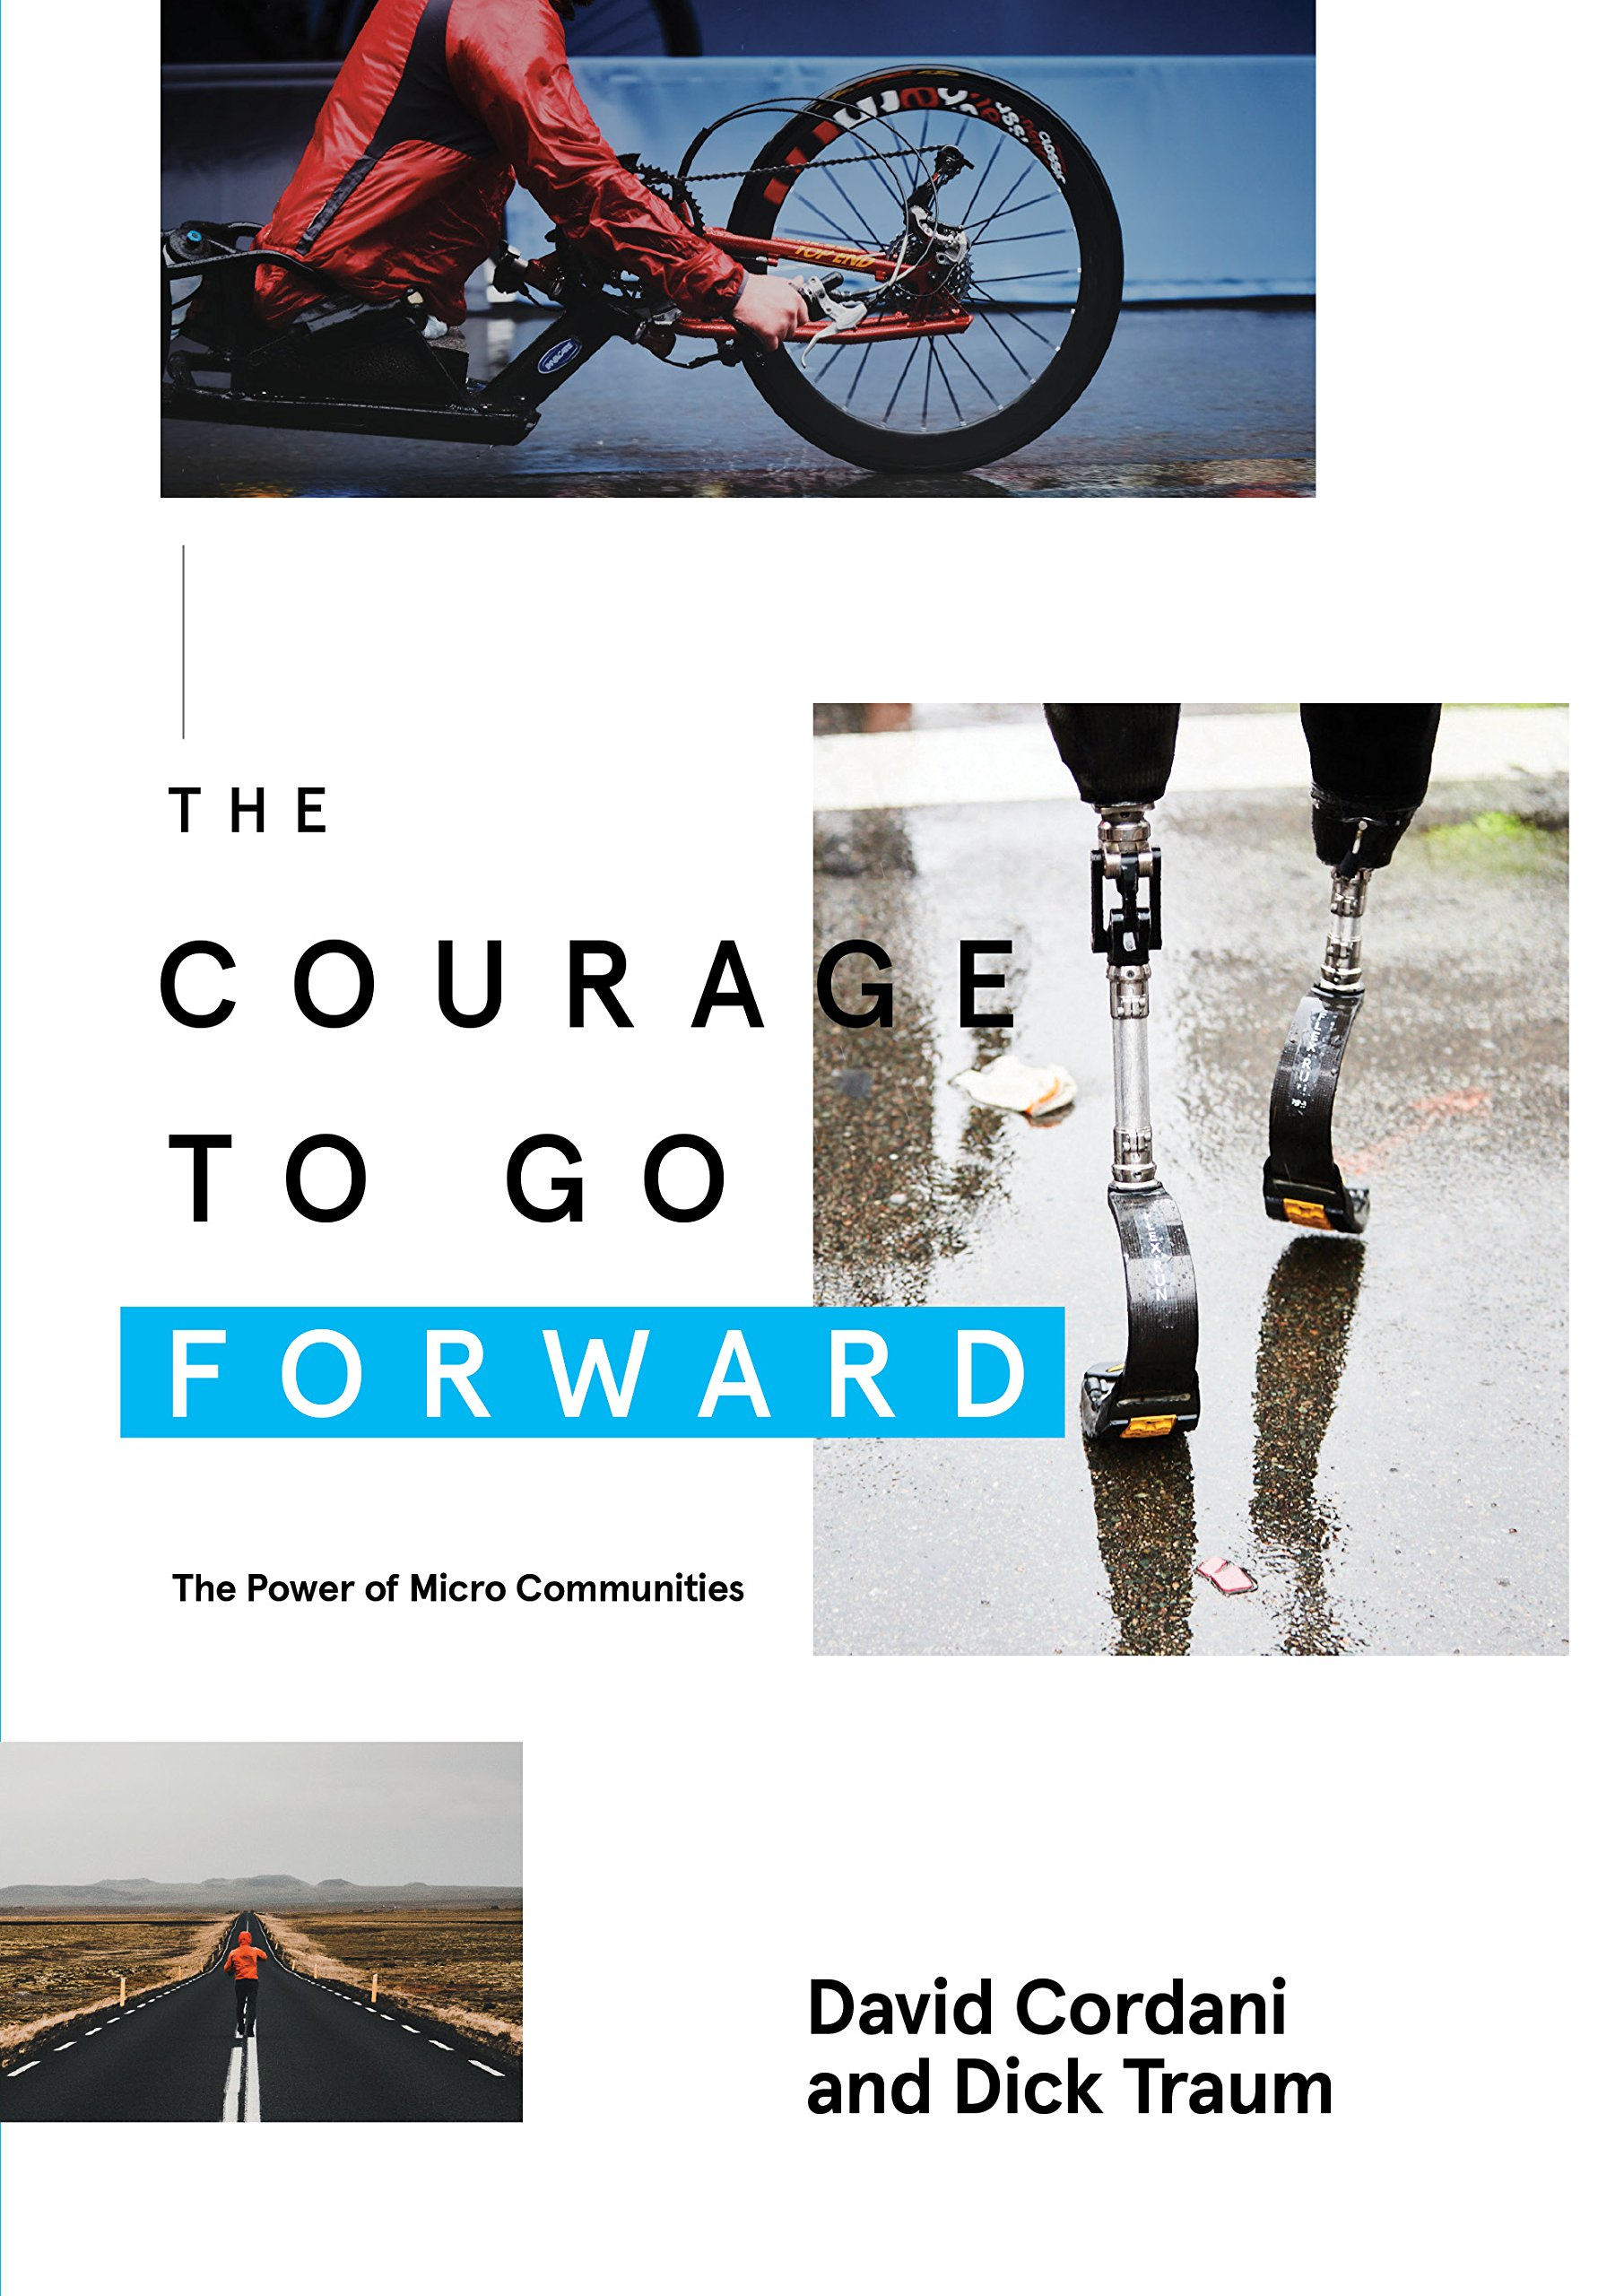 The Courage to Go Forward: The Power of Micro Communities Hardcover – July 17, 2018 David Cordani Dick Traum Morgan James Publishing 1642791601